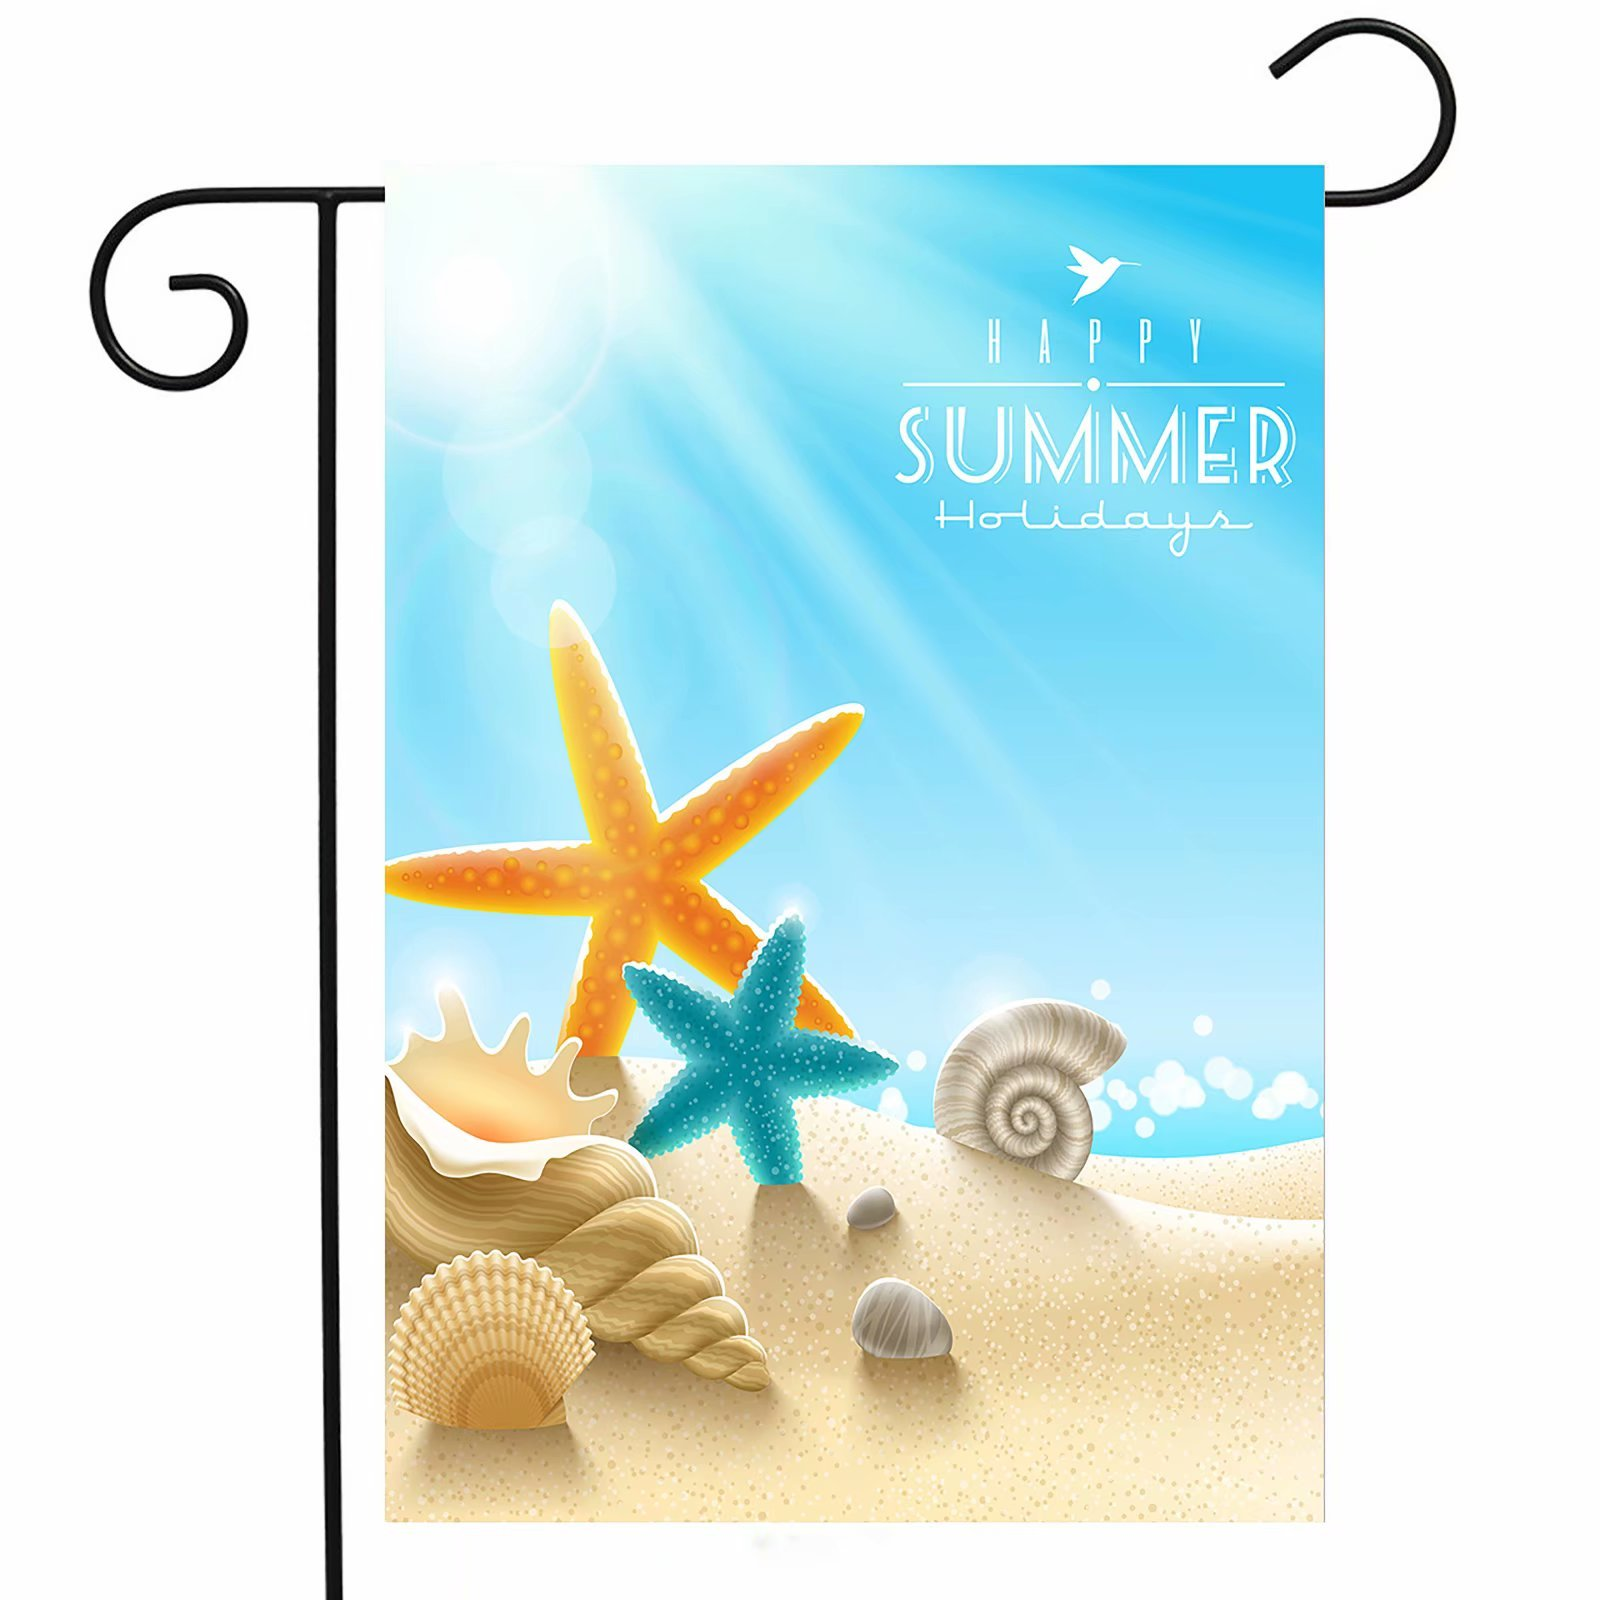 ShineSnow Summer Beach Underwater Starfish Seashell Garden Yard Flag 12''x 18'' Double Sided, Shell Scallop Snail Sand Sunlight Polyester Welcome House Flag Banners for Patio Lawn Outdoor Home Decor by ShineSnow